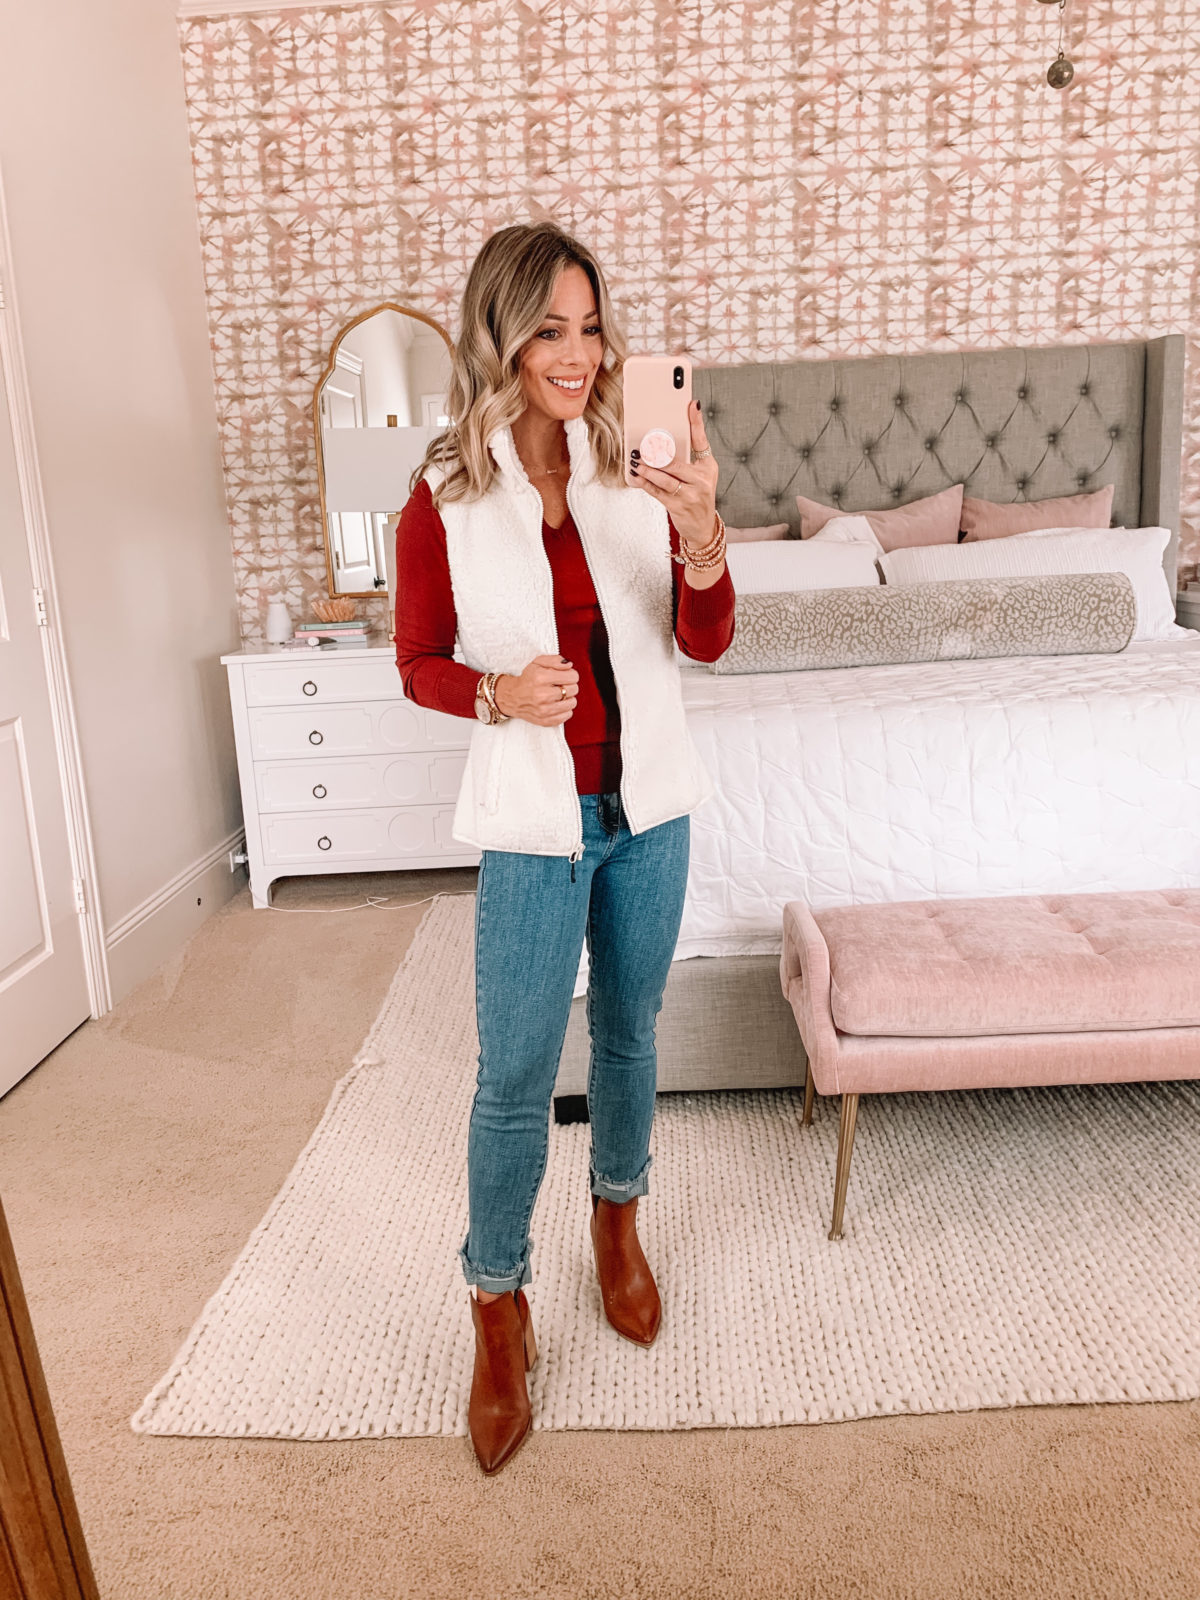 Amazon Fashion Faves, Red Long Sleeve Top, Jeans, Booties, Fleece Vest